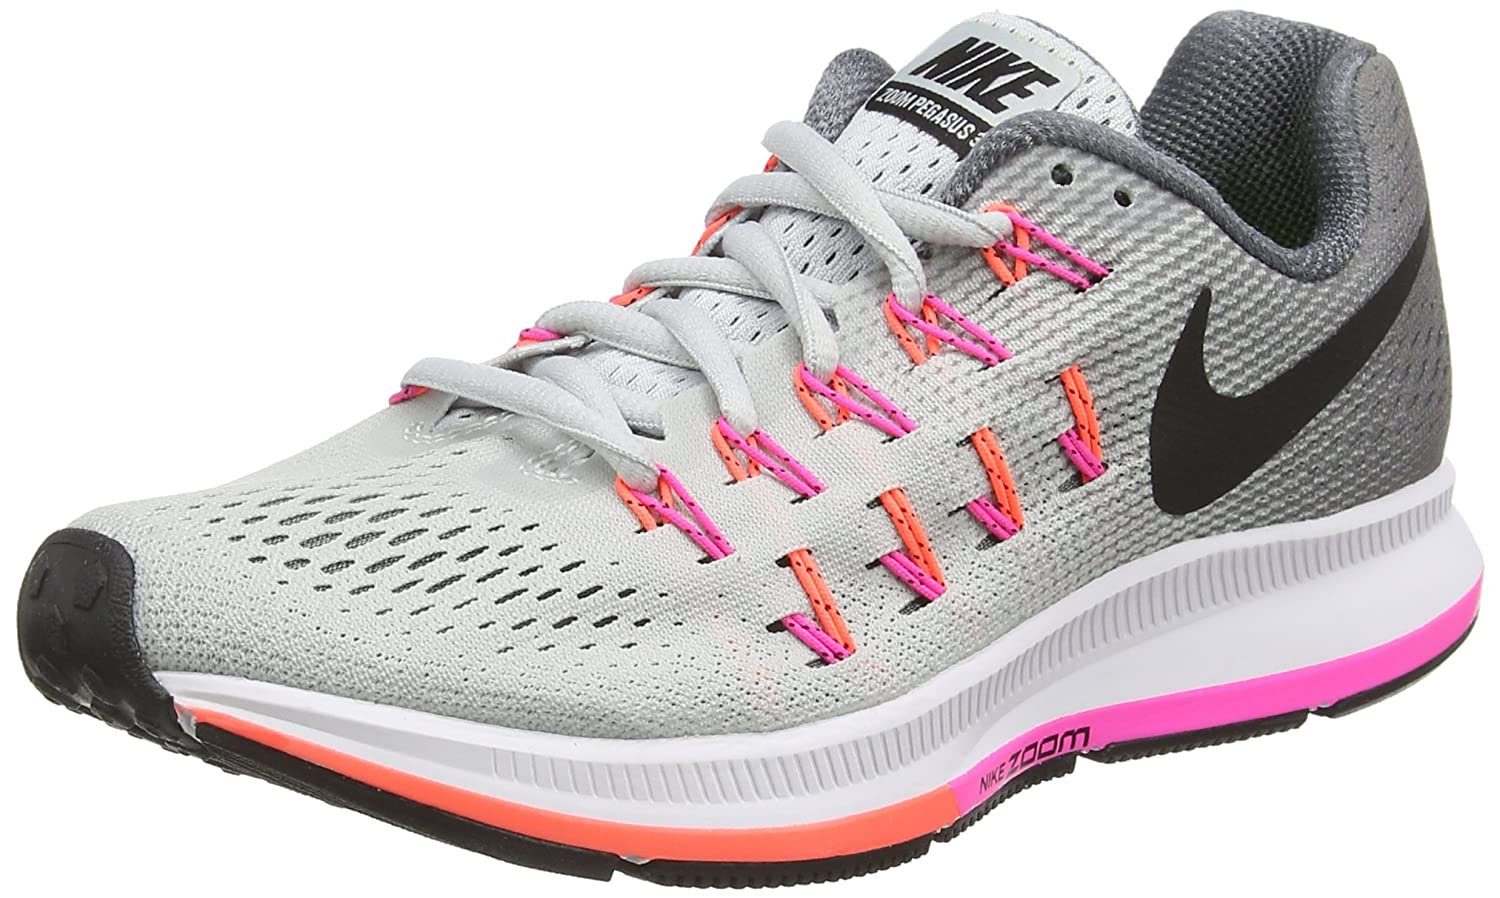 NIKE Women's Air Zoom Pegasus 33 B015NTCZGO 11 B(M) US|Platinum/Black/Grey/Pink Blast